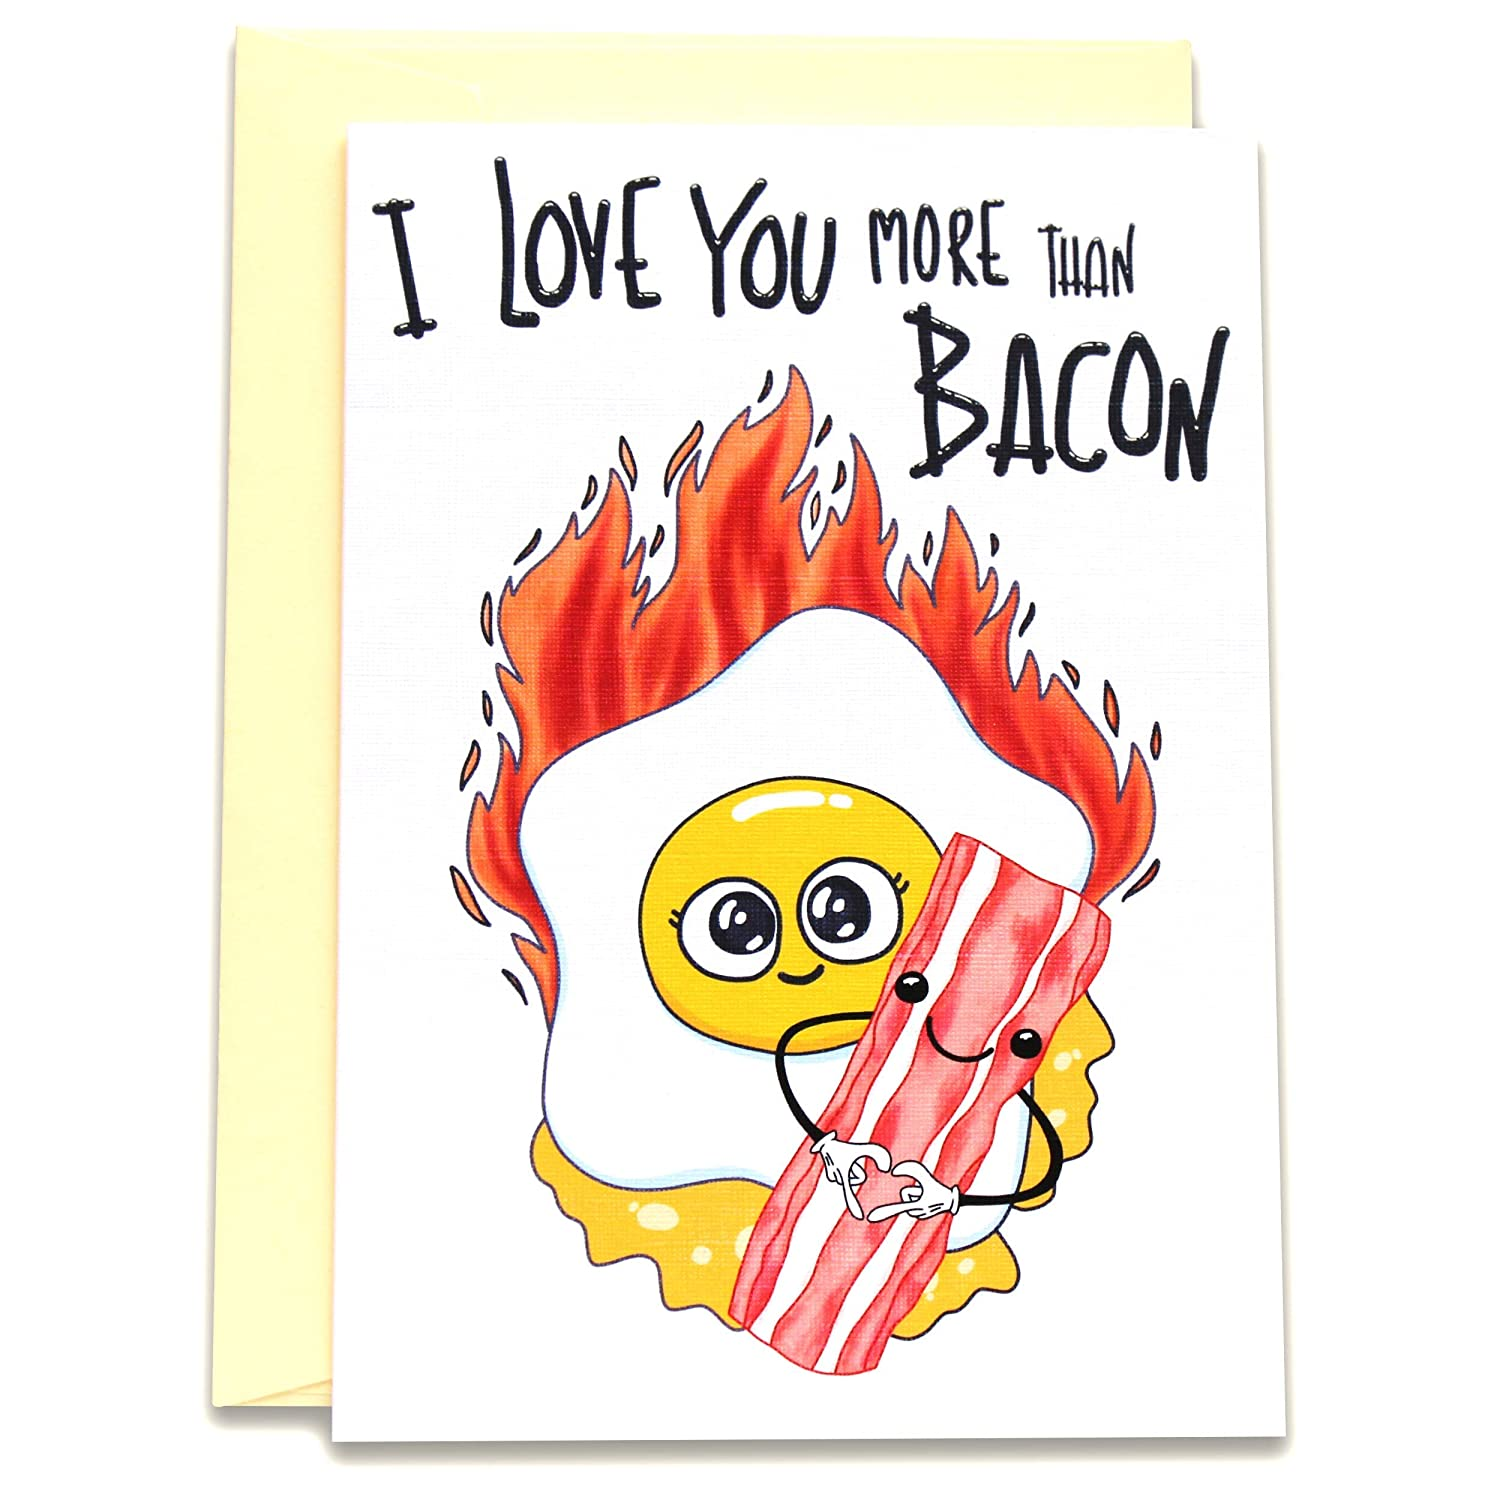 I Love You More Than Now free shipping Bacon Card Go Together New product type E Like We and